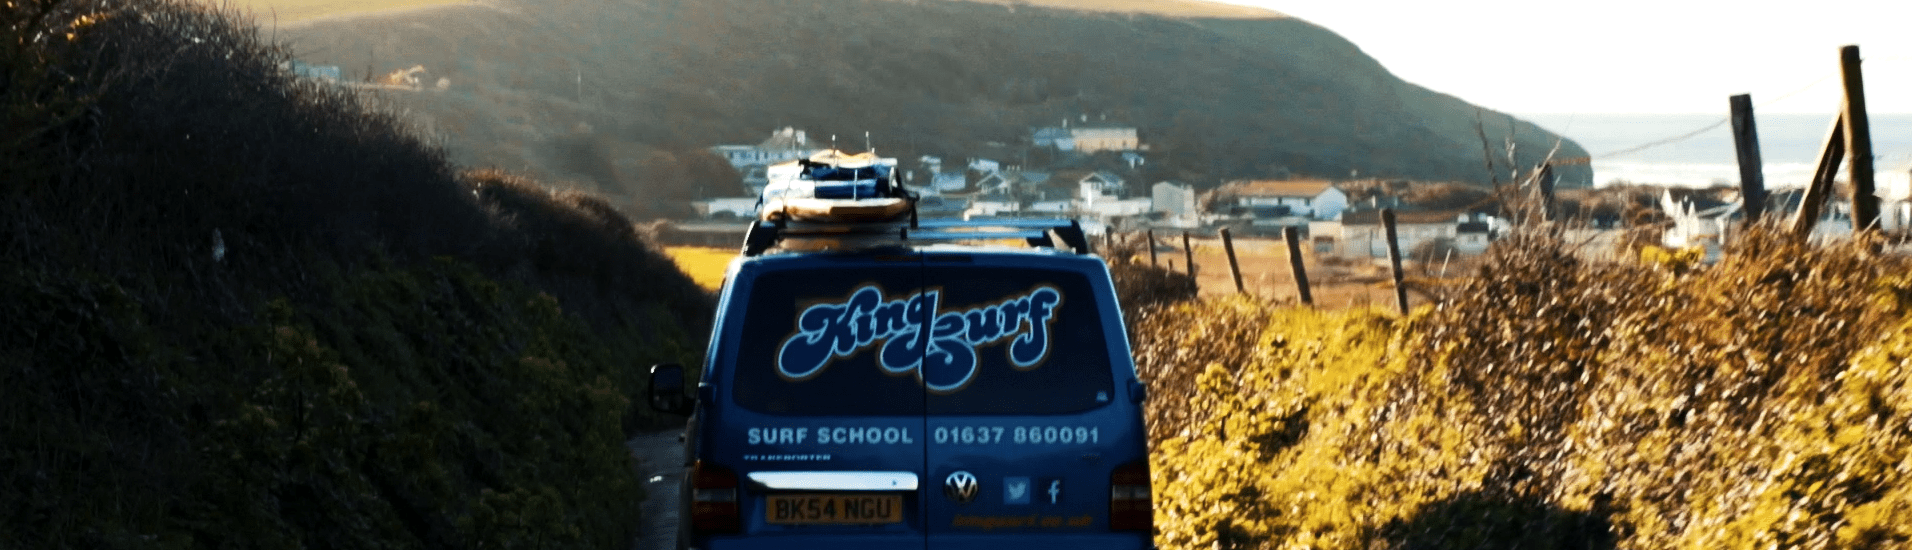 Easter surf school review